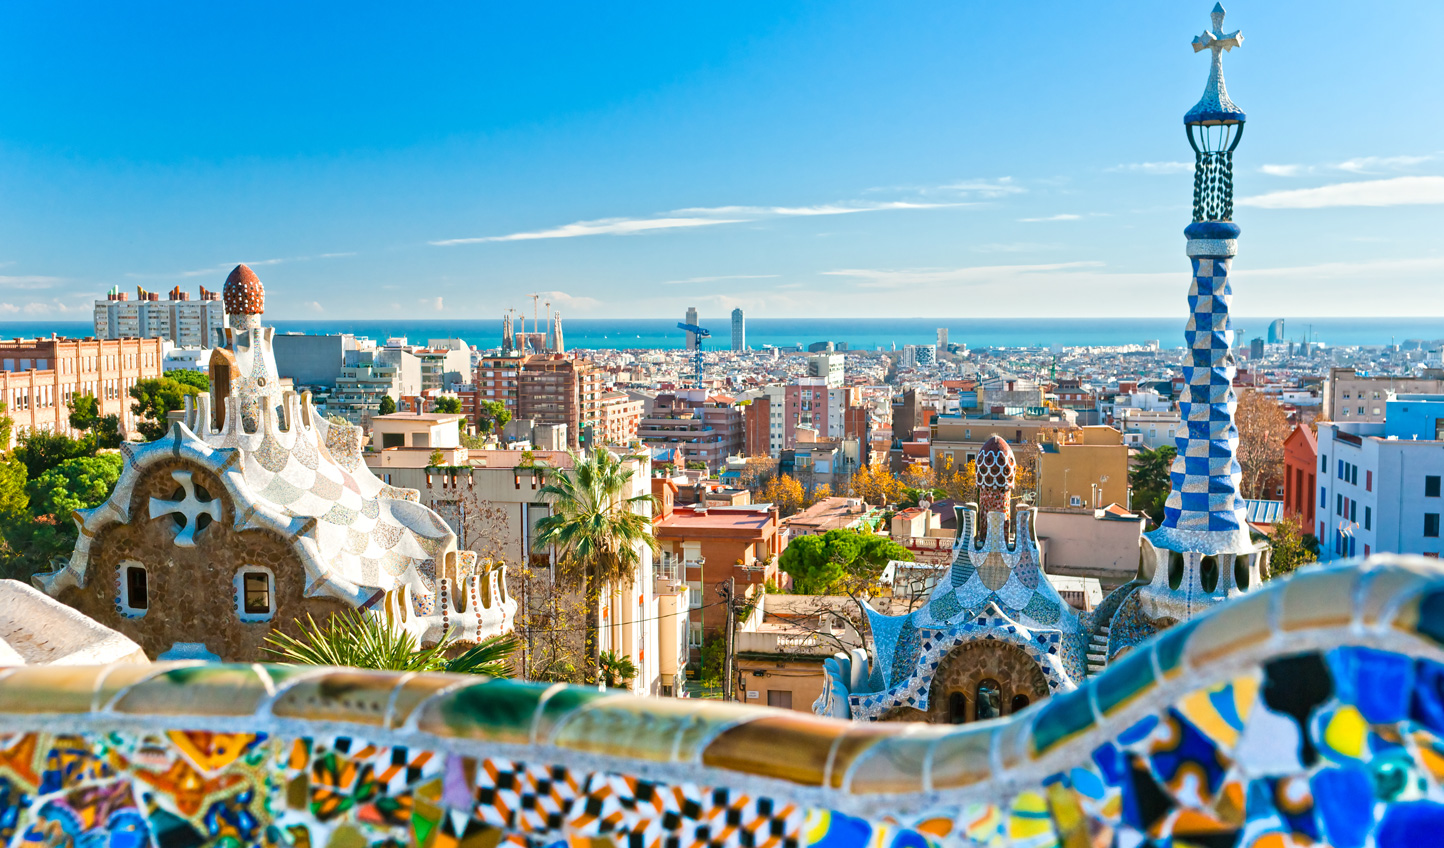 Enjoy views across the city from Park Guell